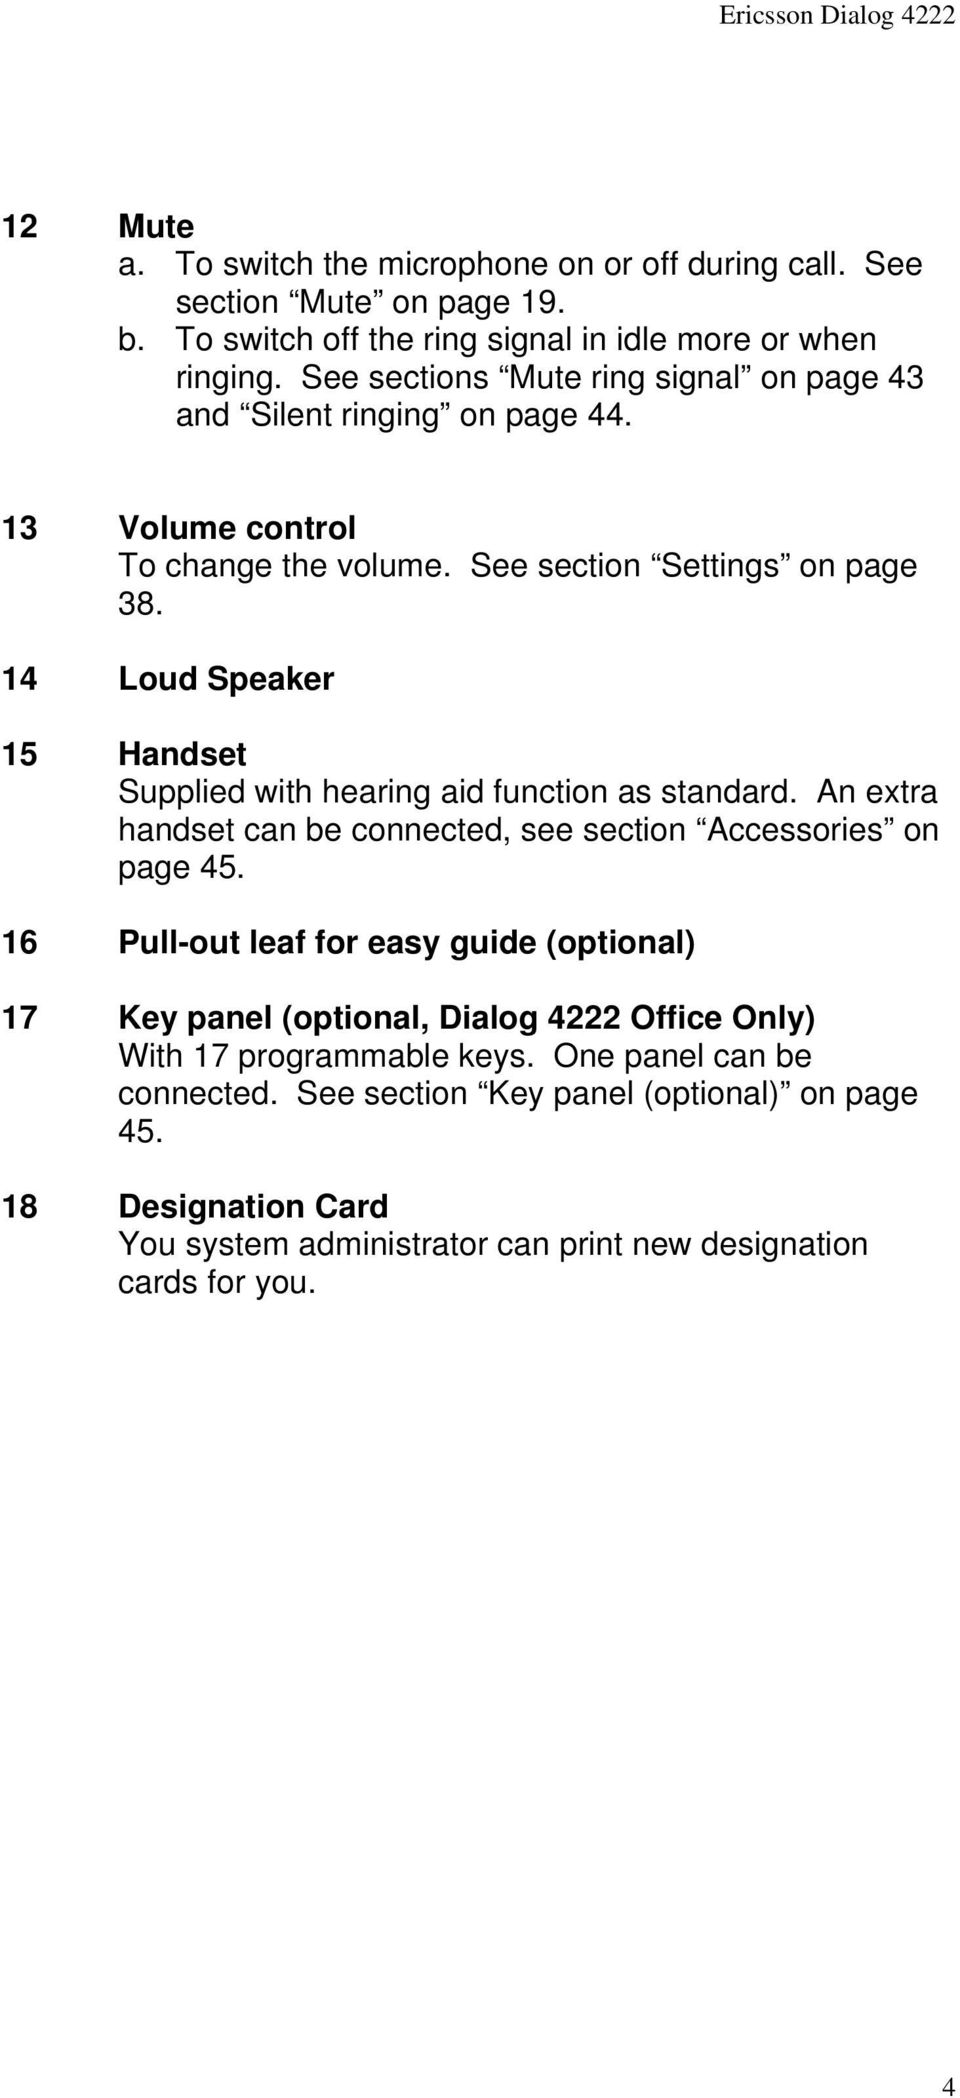 14 Loud Speaker 15 Handset Supplied with hearing aid function as standard. An extra handset can be connected, see section Accessories on page 45.